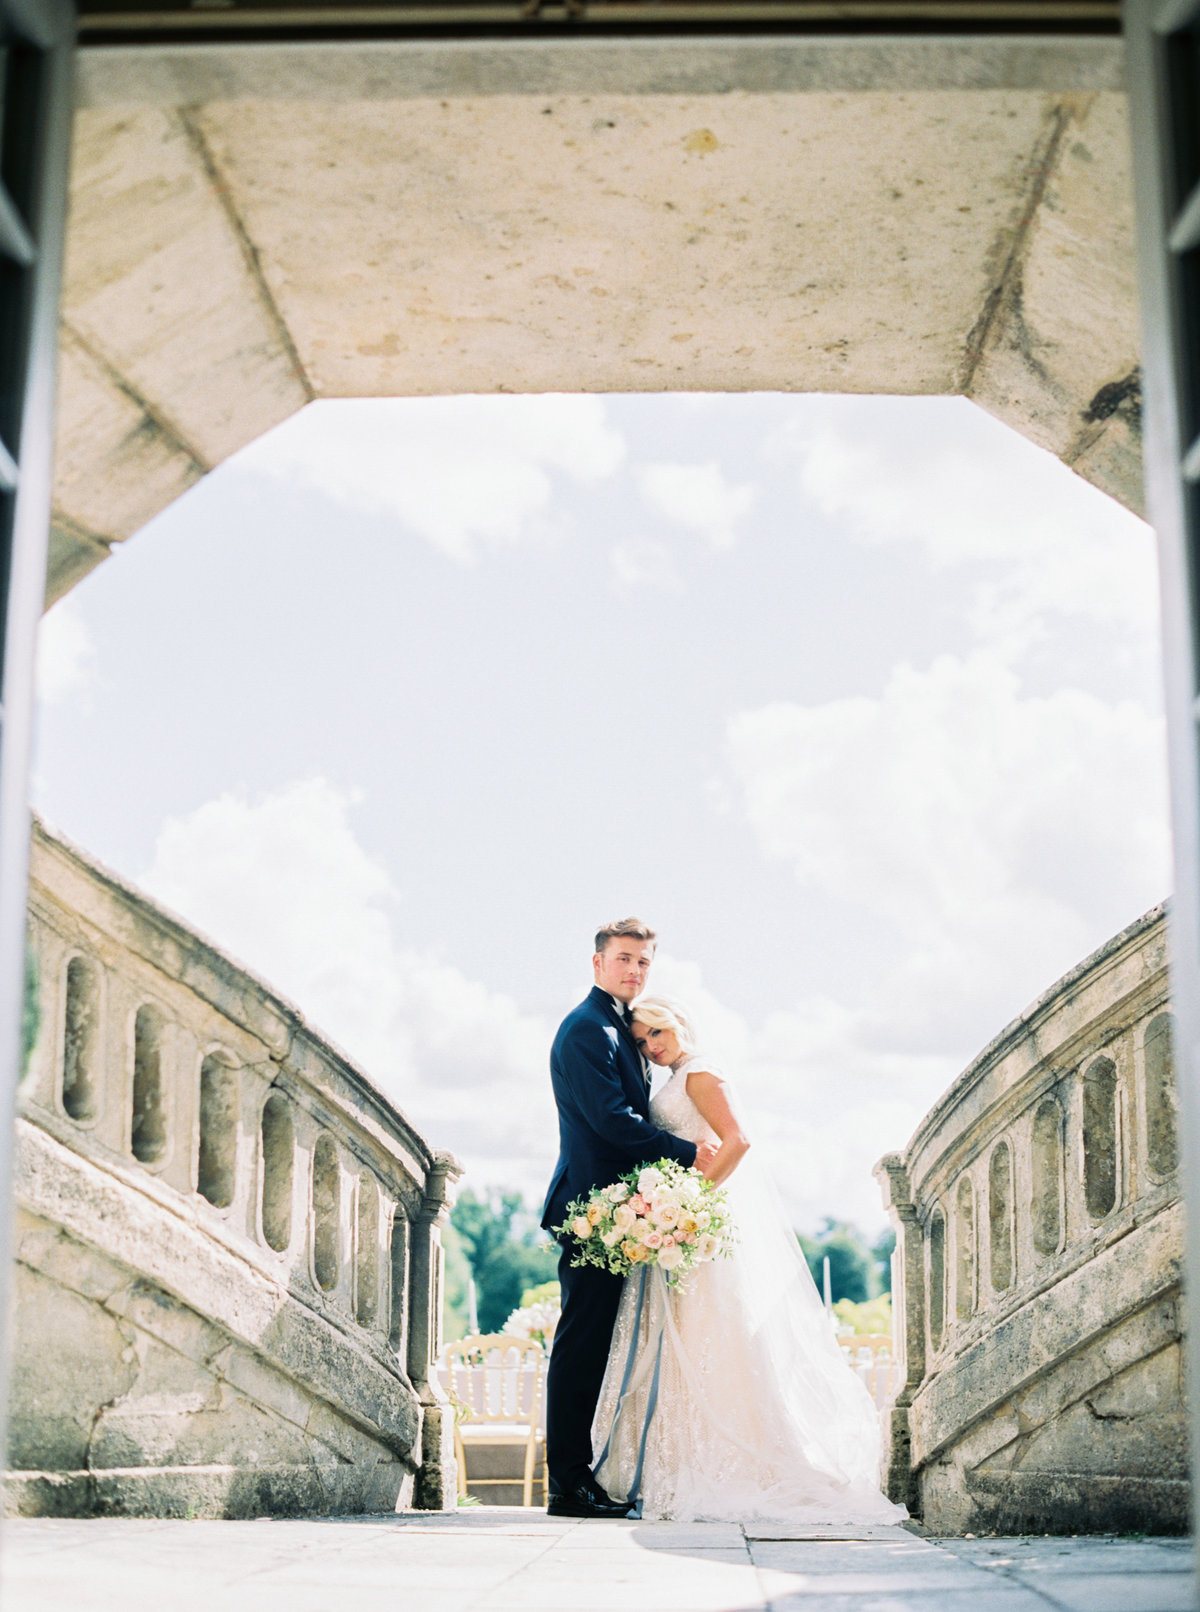 Paris France Wedding - Mary Claire Photography-58